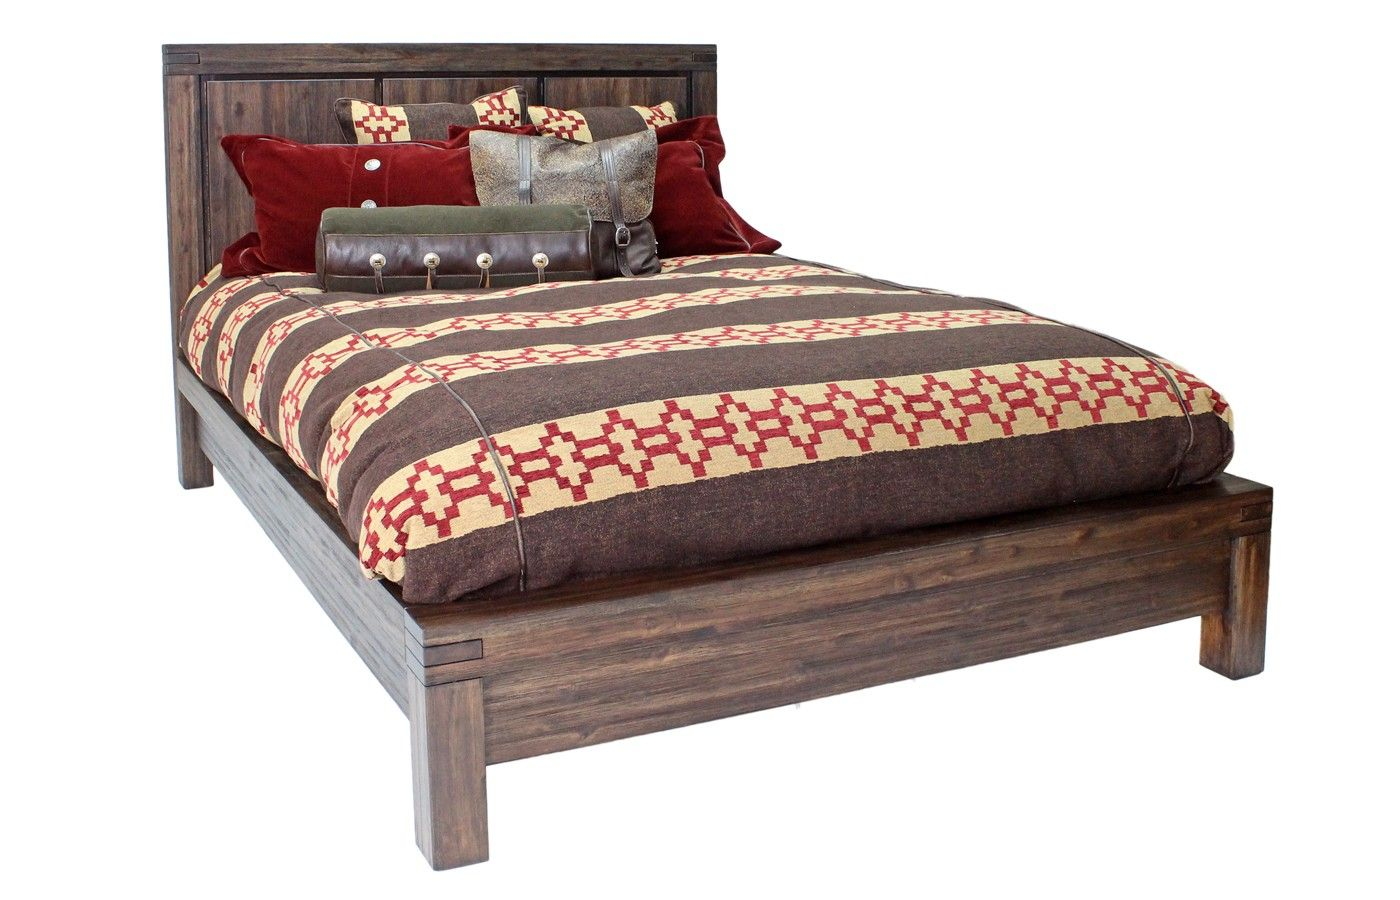 Mor Furniture for Less Meadow Cal King Platform Bed